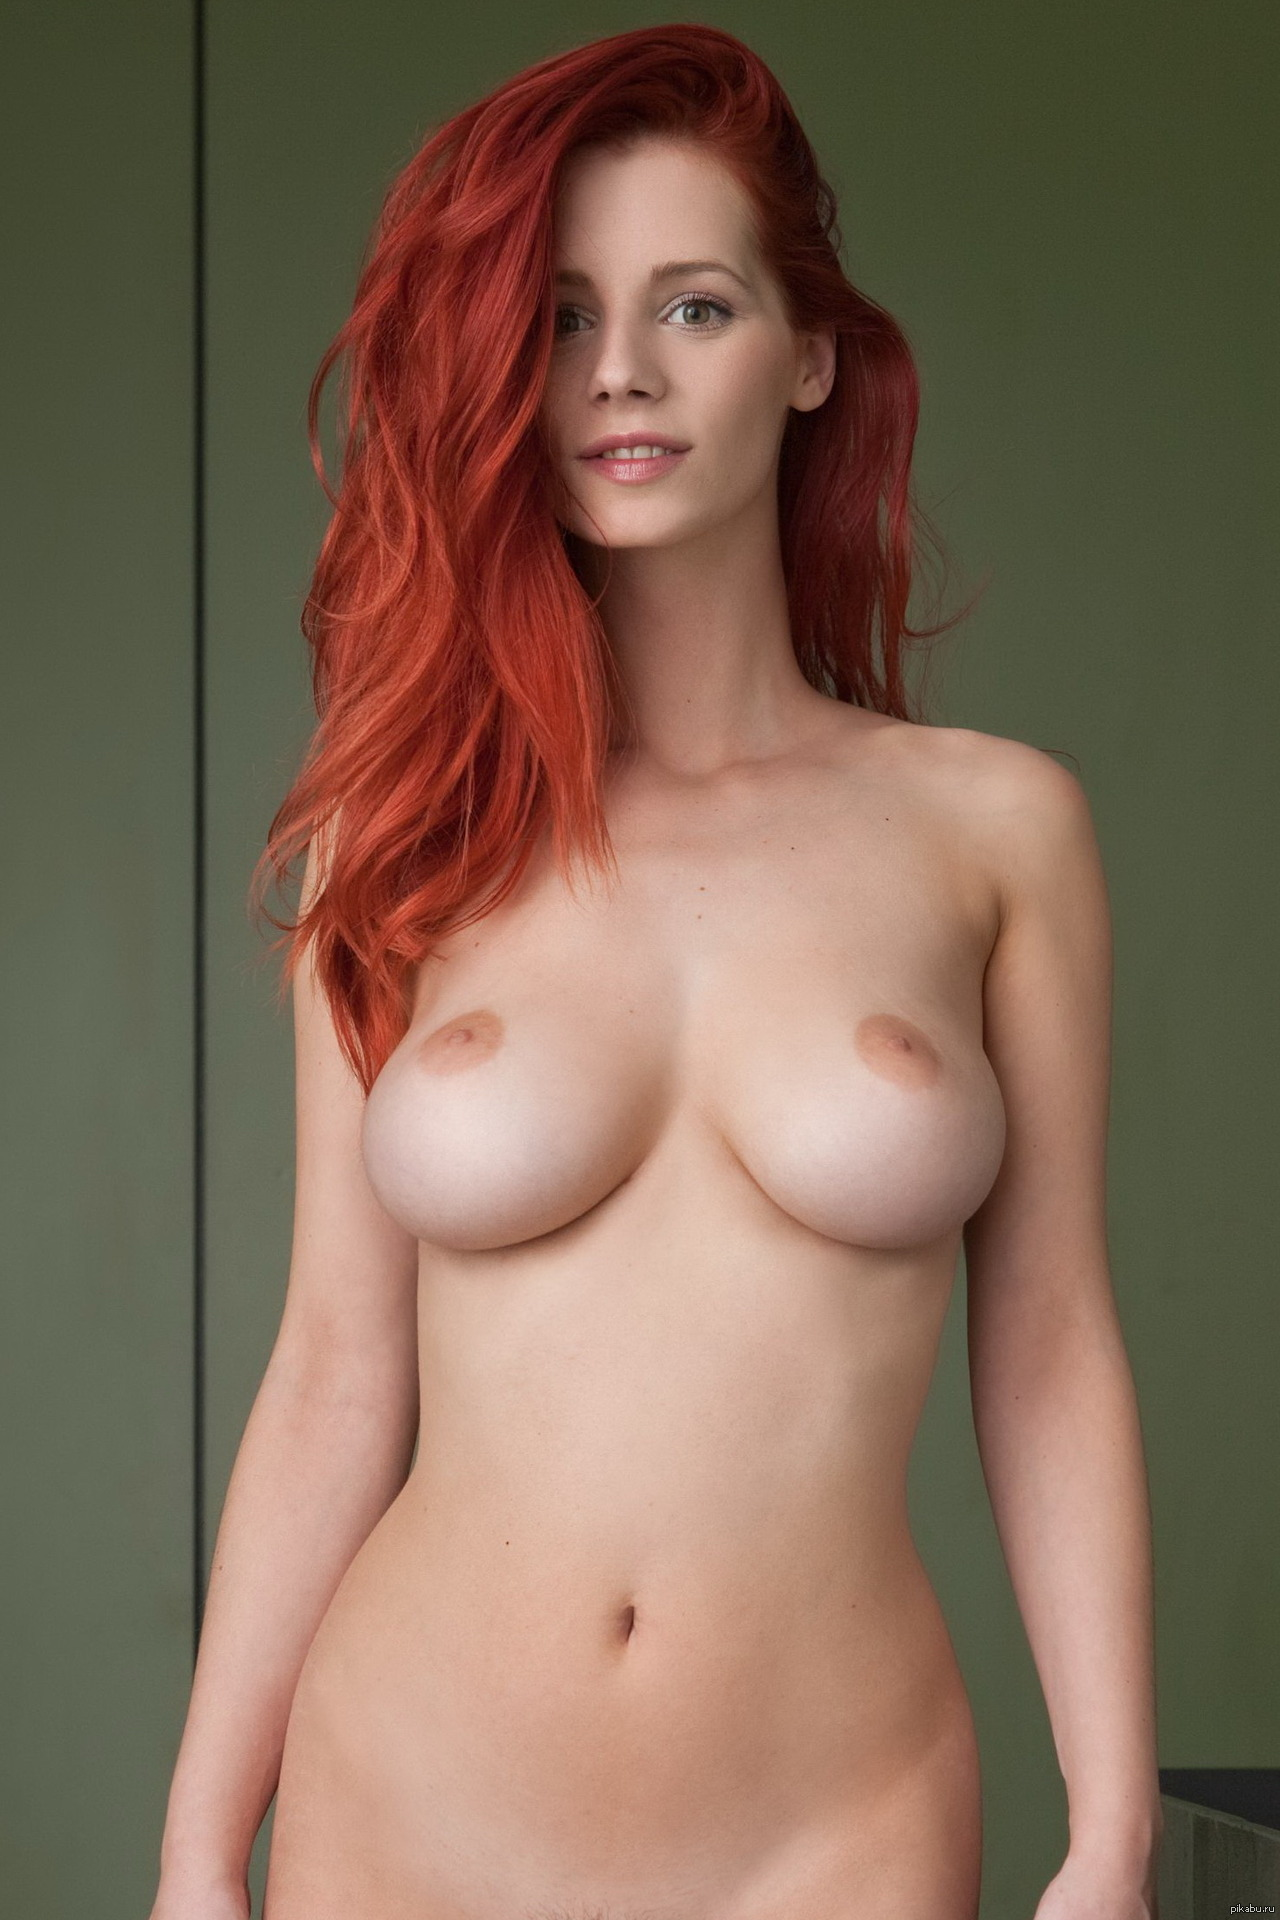 Hottest naked redhead women